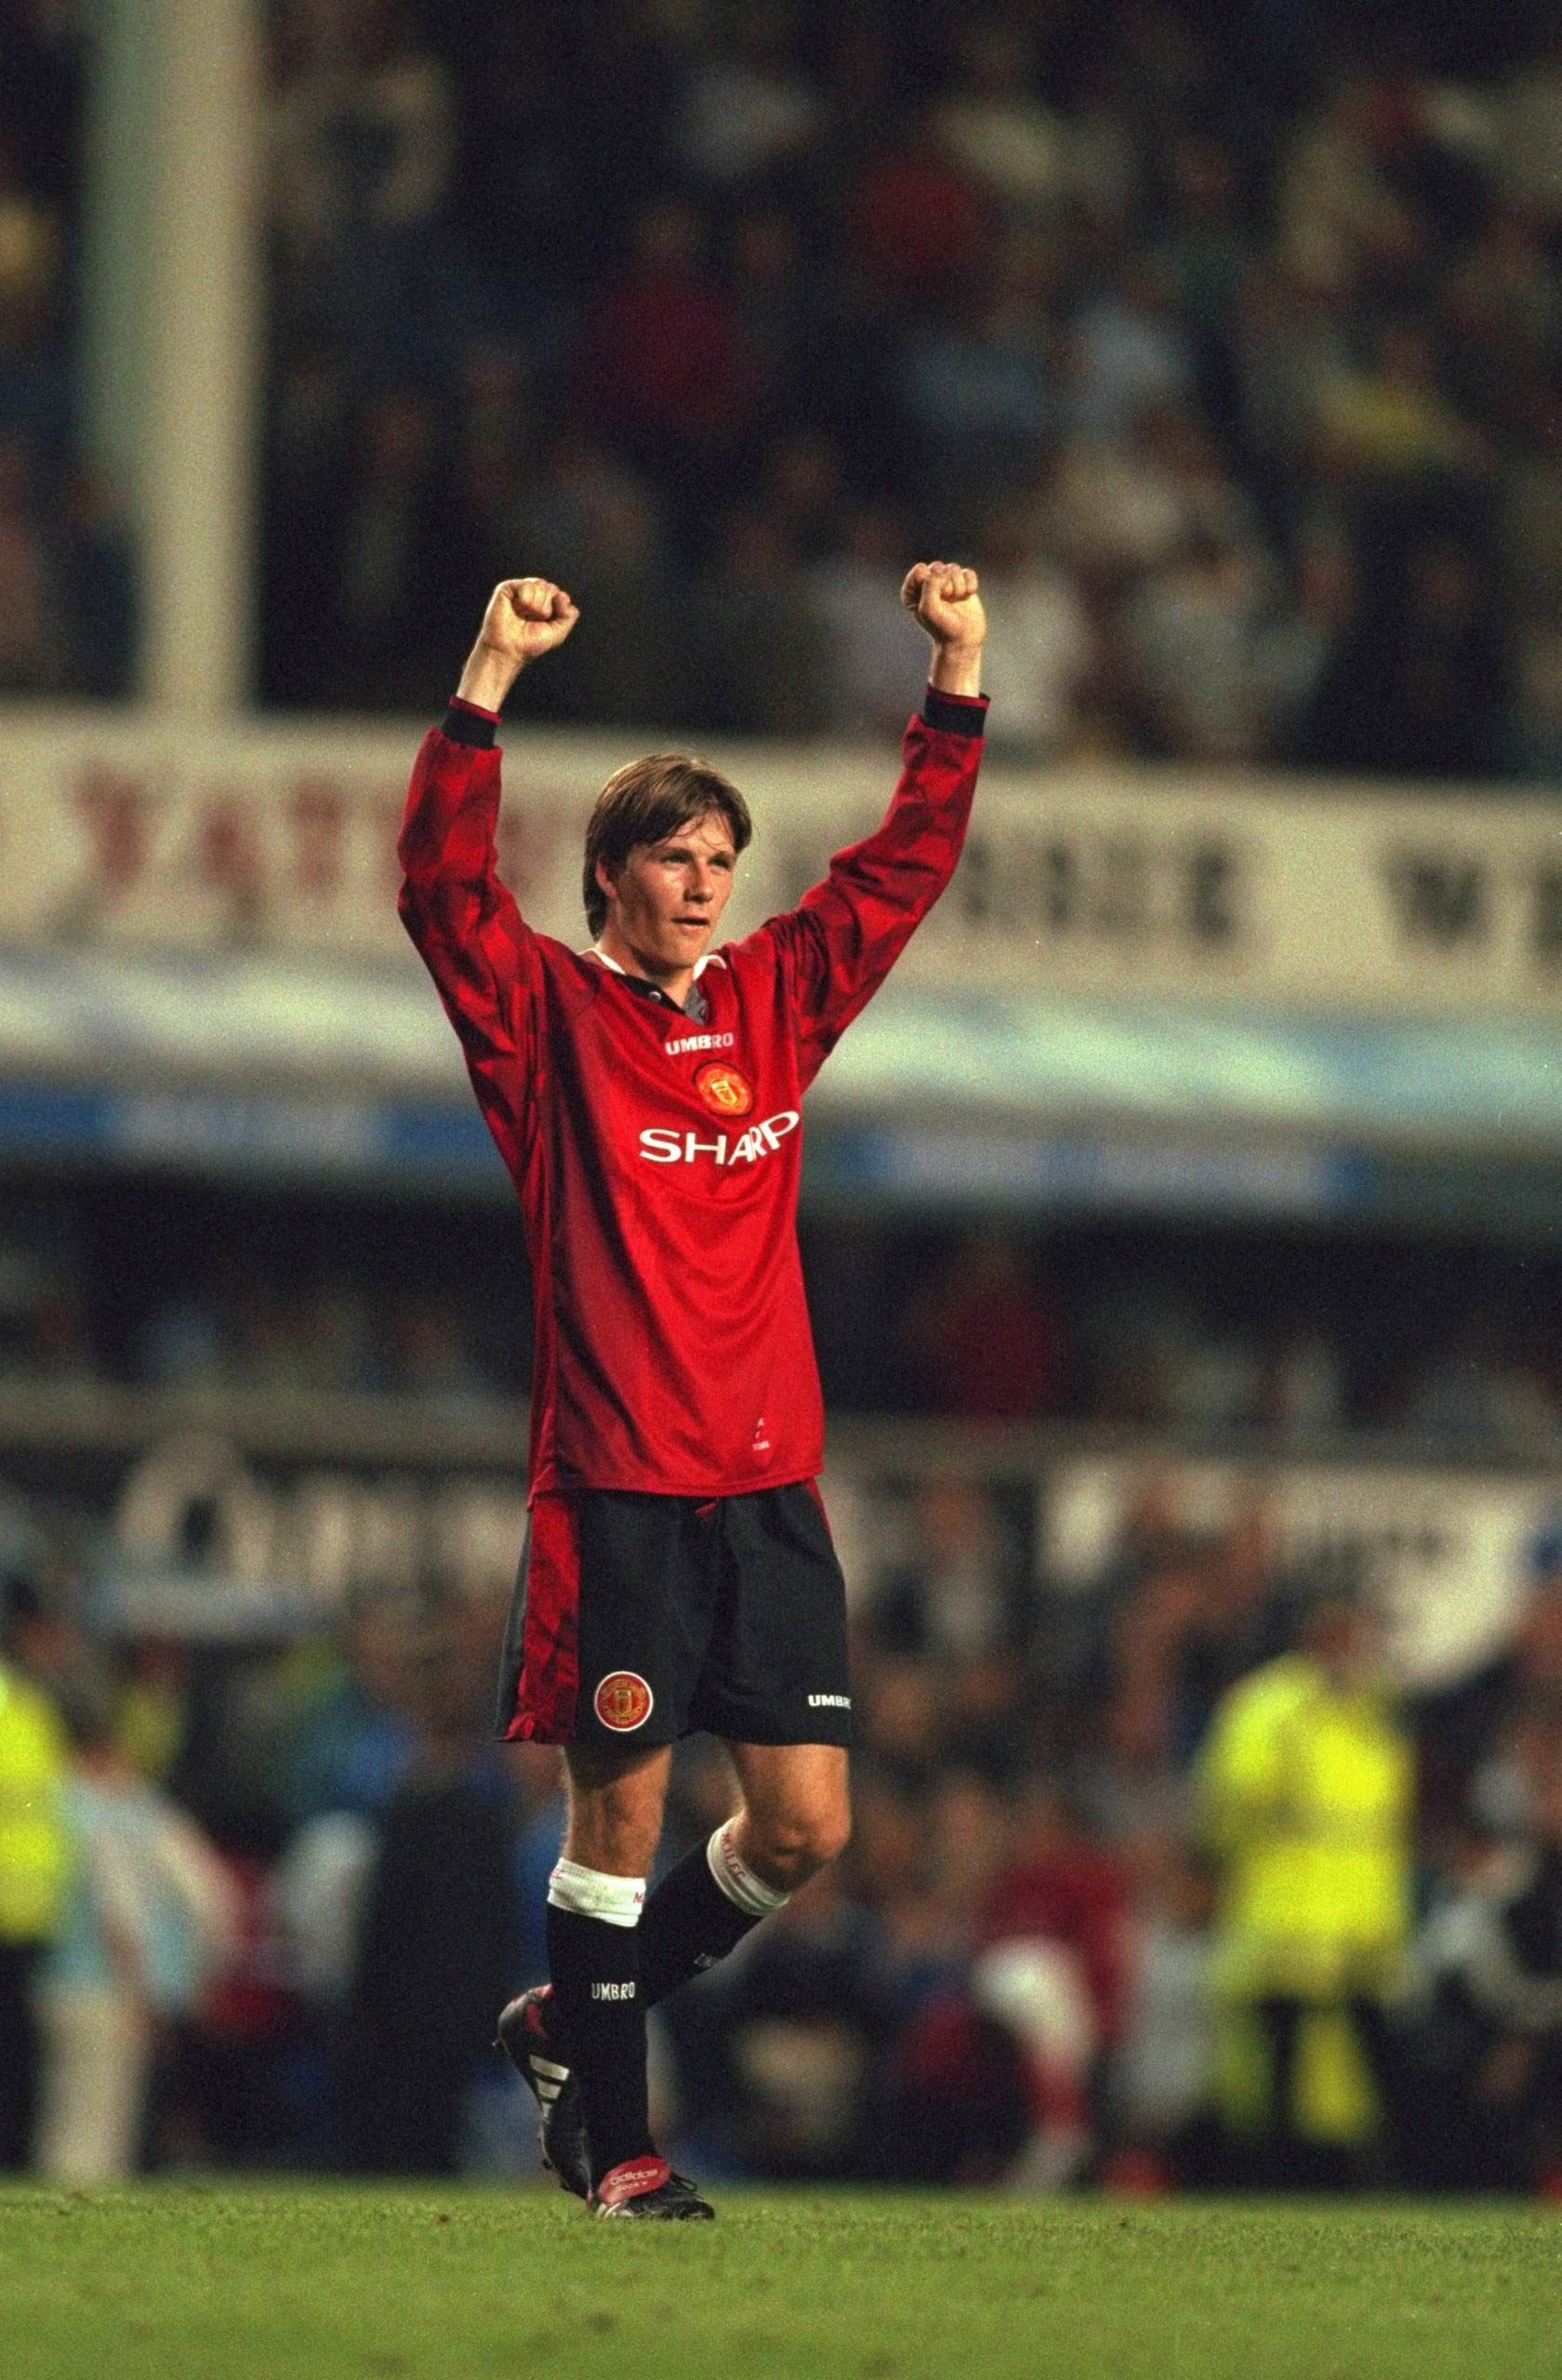 David Beckham of Manchester United celebrates to the crowd after scoring a goal during the FA Carling Premiership match against Everton played at Goodison Park in Liverpool, England in 1997.